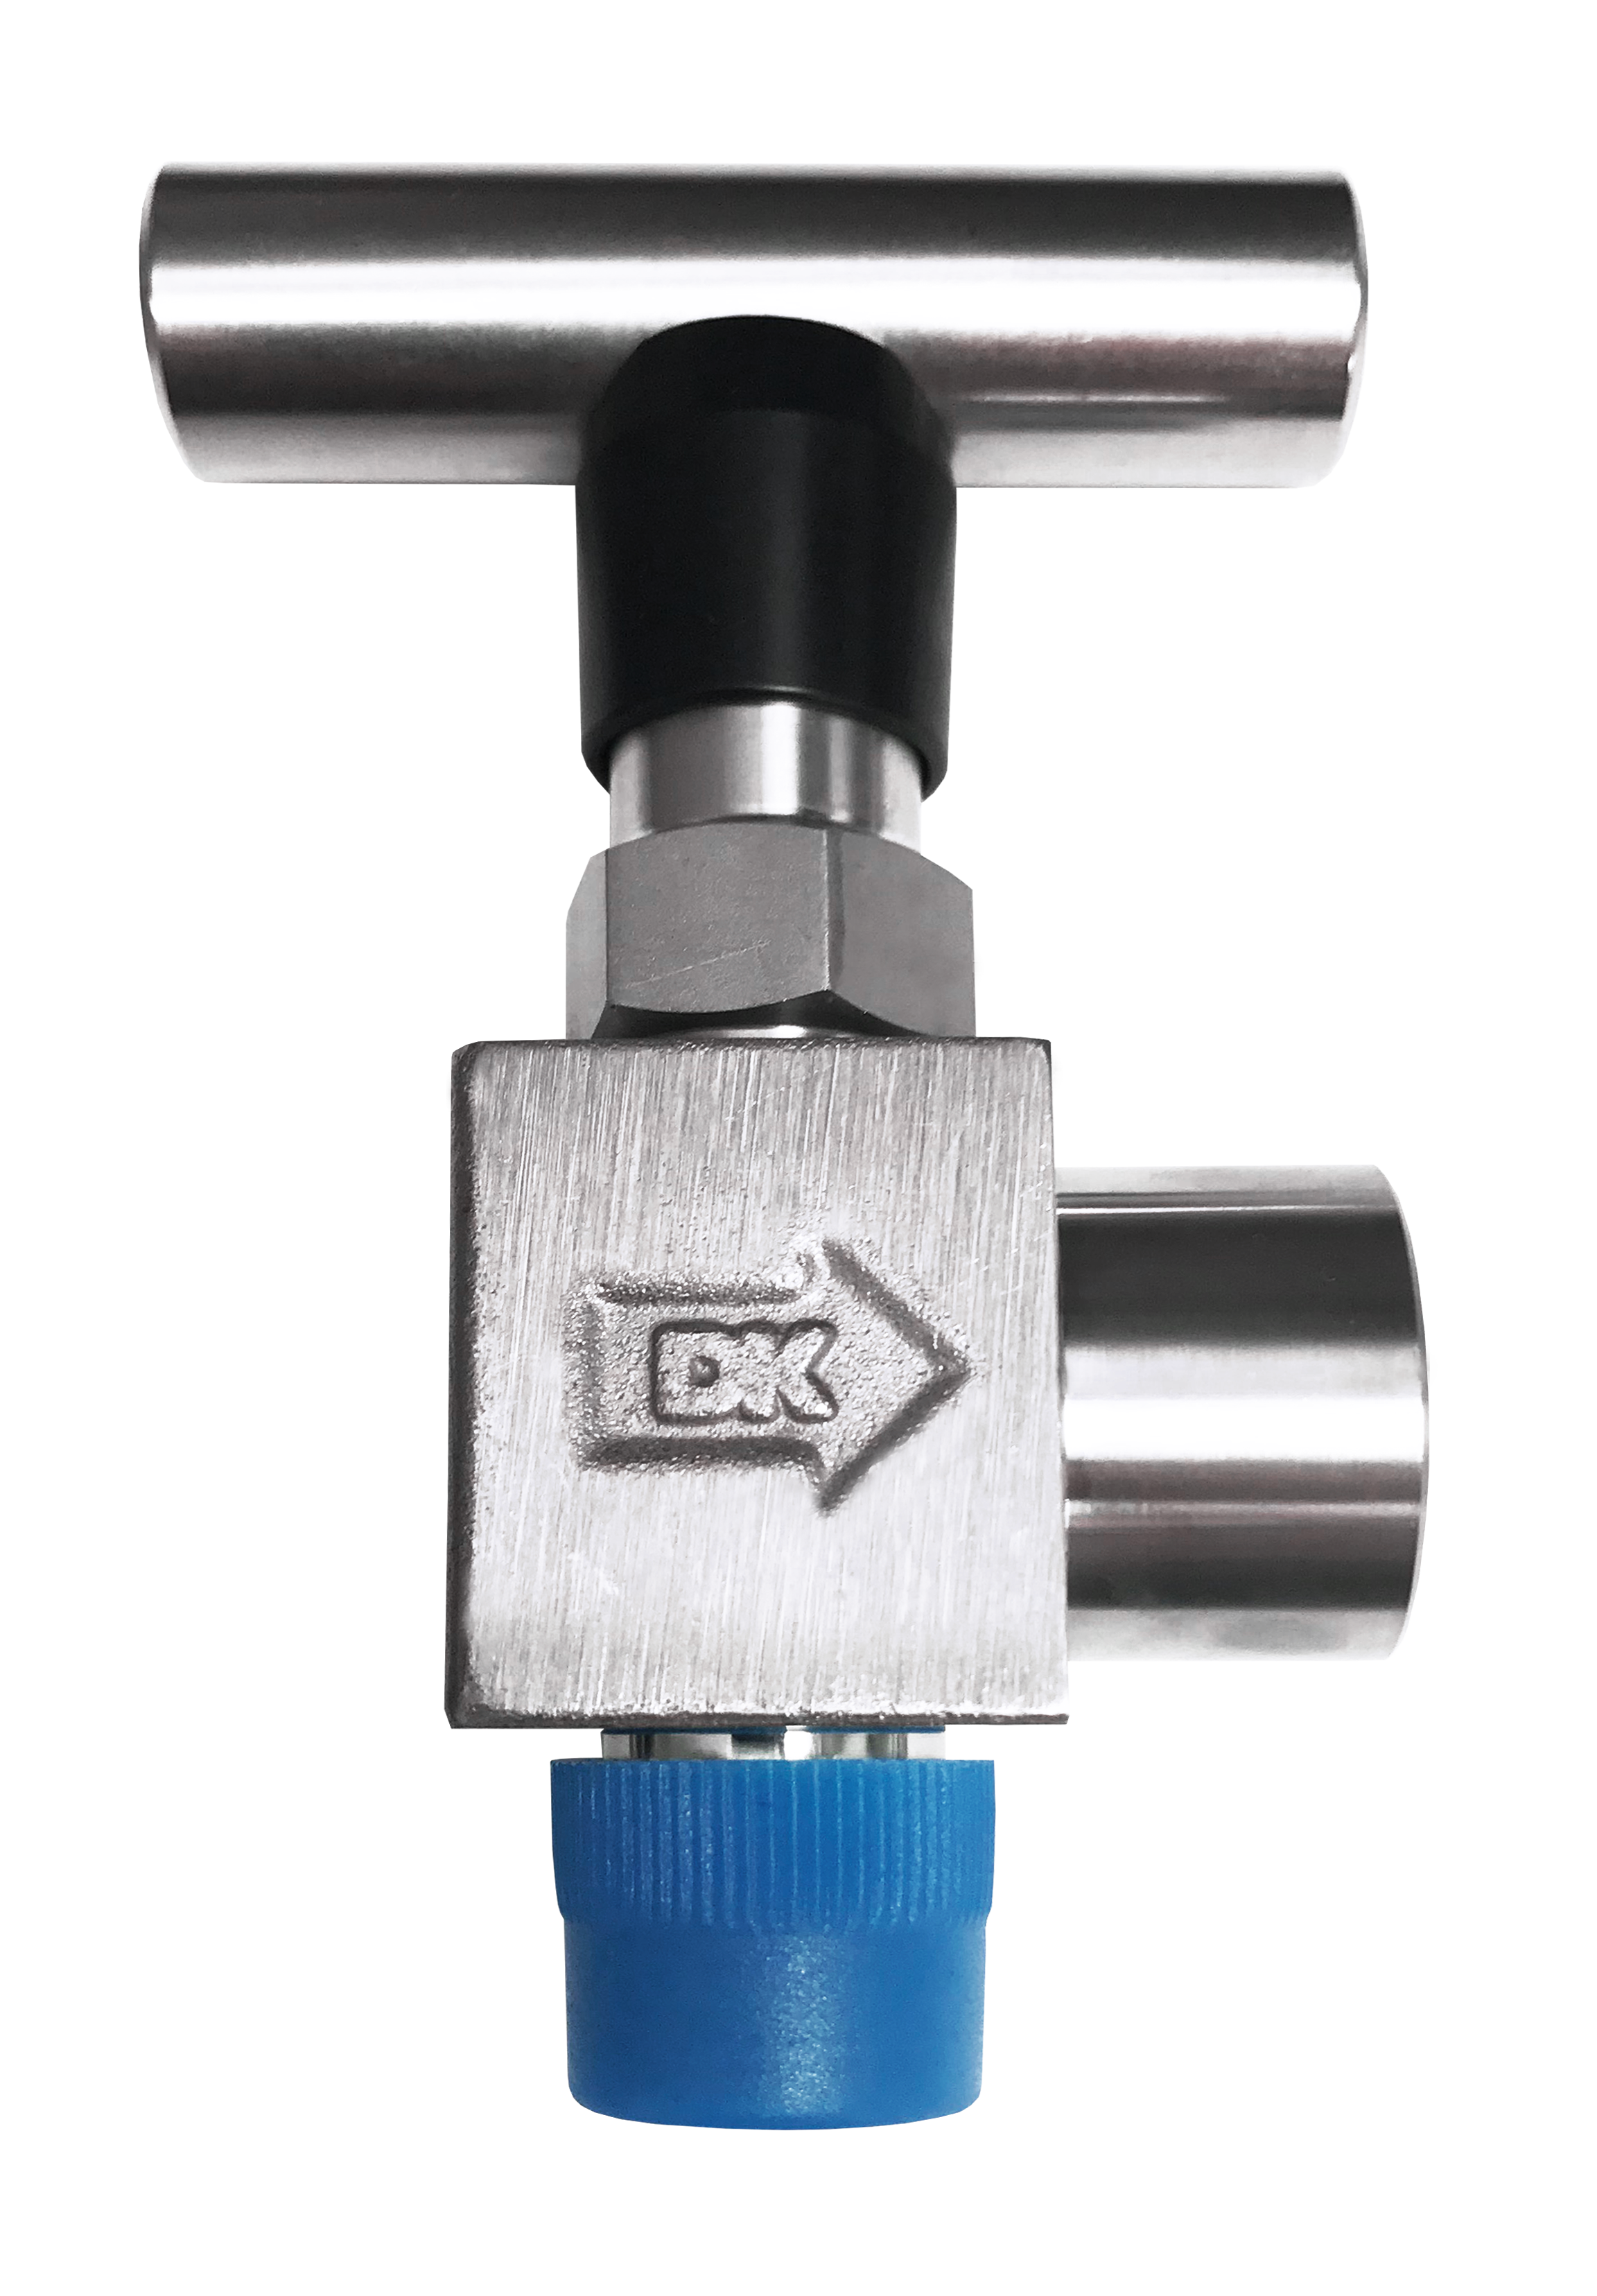 Photo of VEX110 Needle Valve